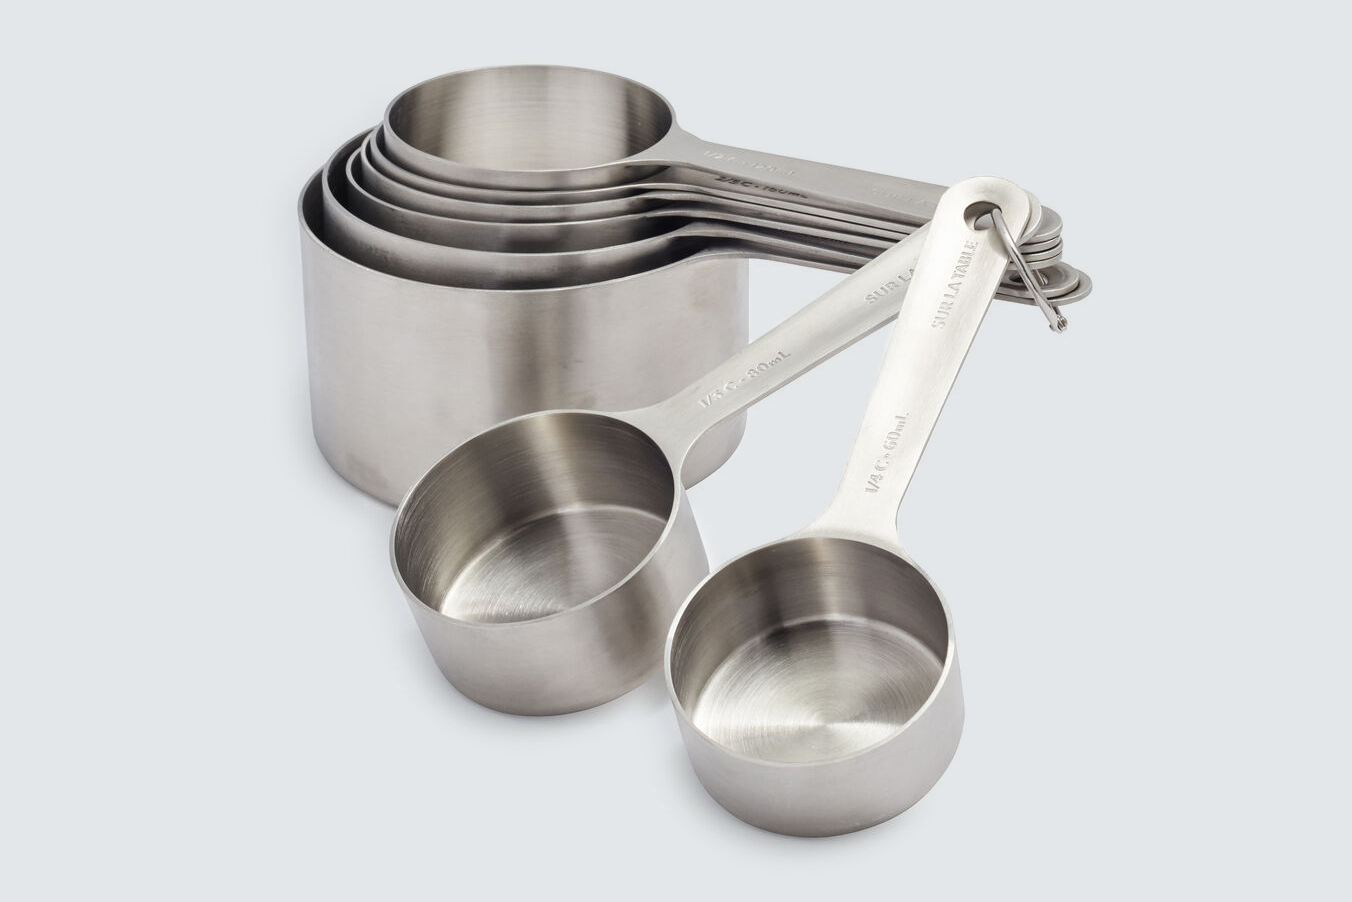 Sur La Table Stainless Steel Measuring Cups